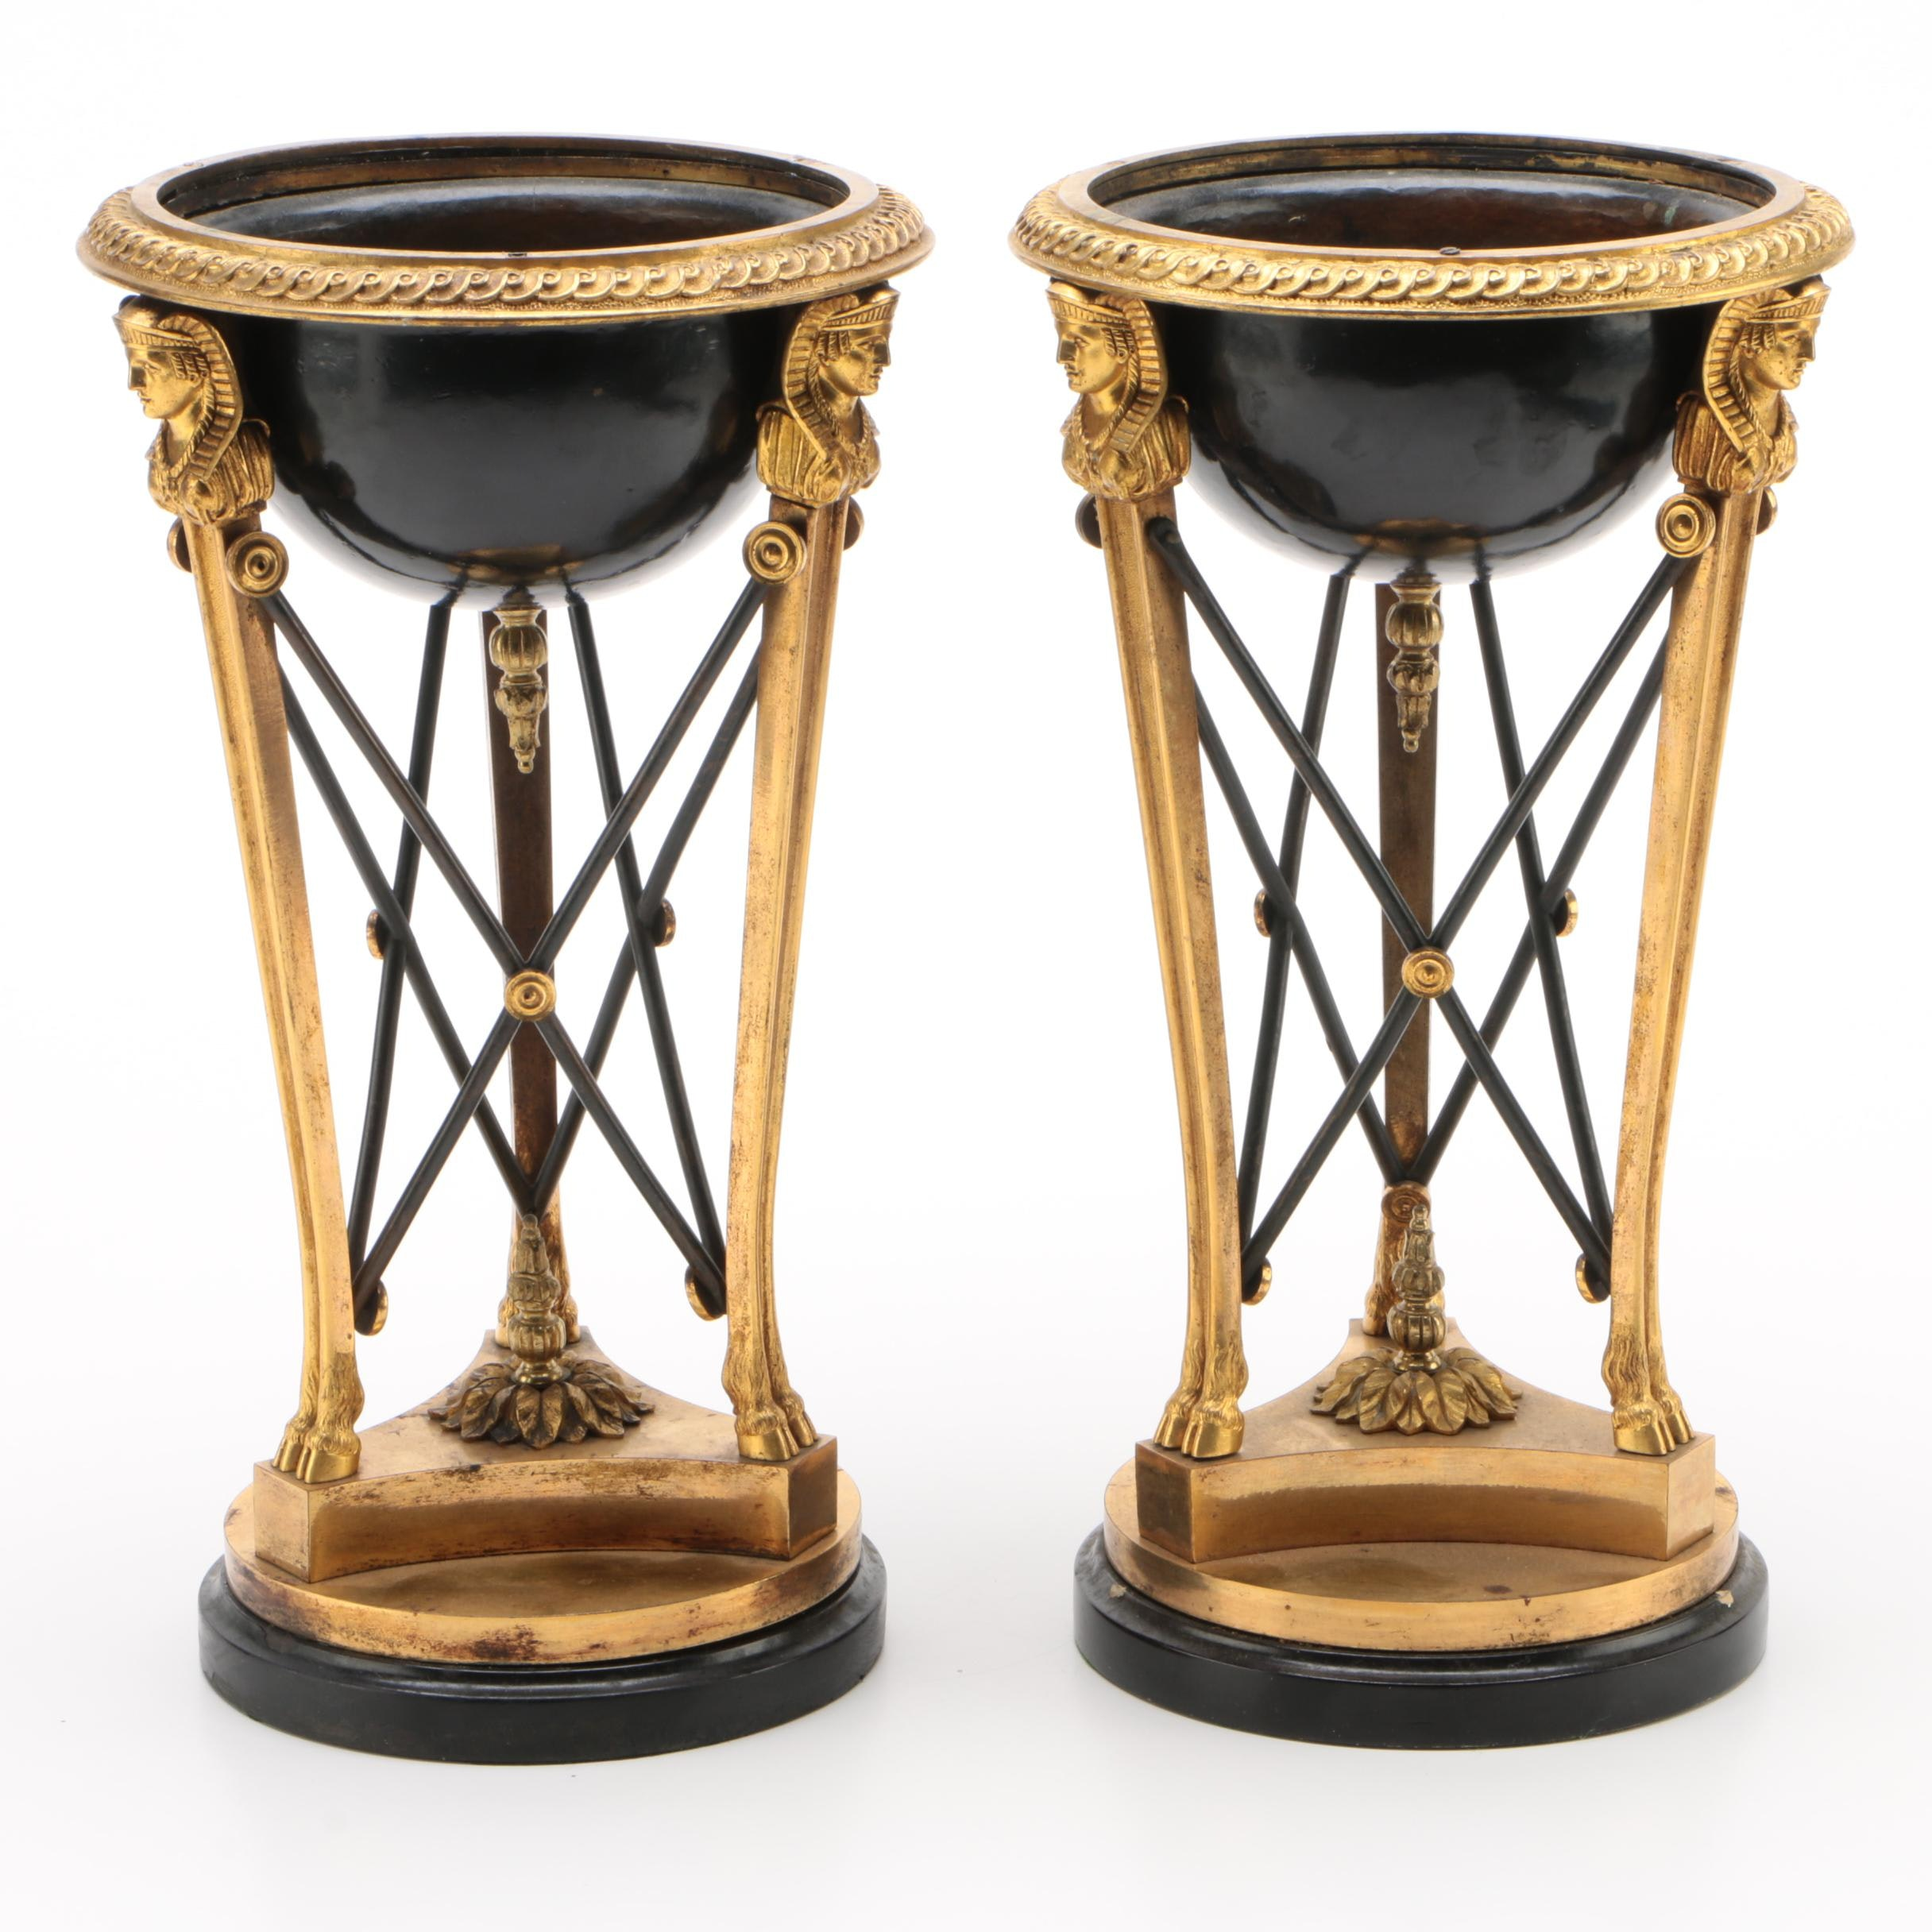 Pair of Empire Style Ebonized and Gilt Metal Pedestal Planters